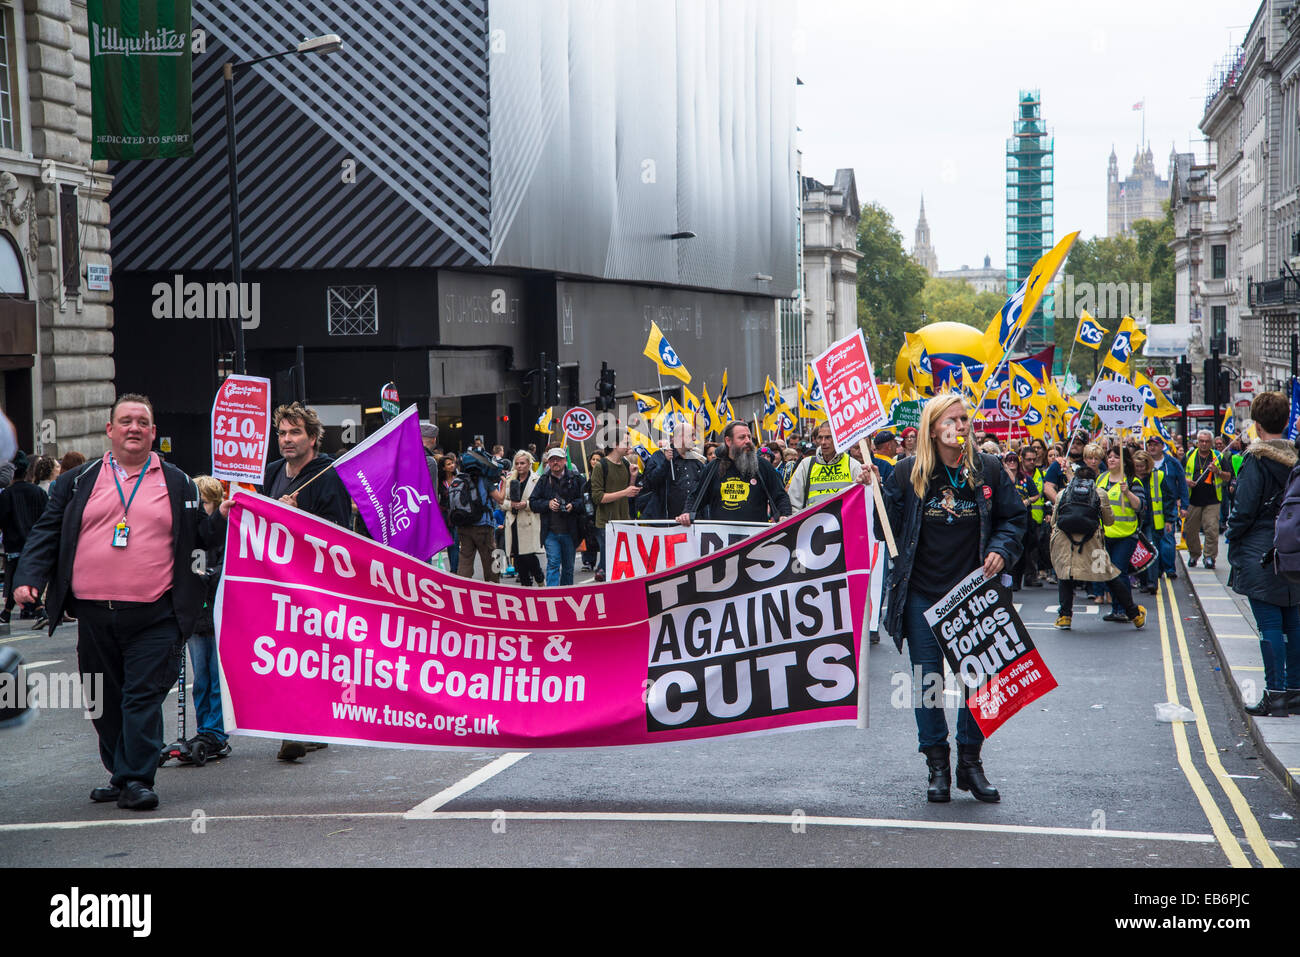 Britain Needs a Pay Rise march, Trade unionist & Socialist Coalition, tusc, London, 18 October 2014, UK - Stock Image